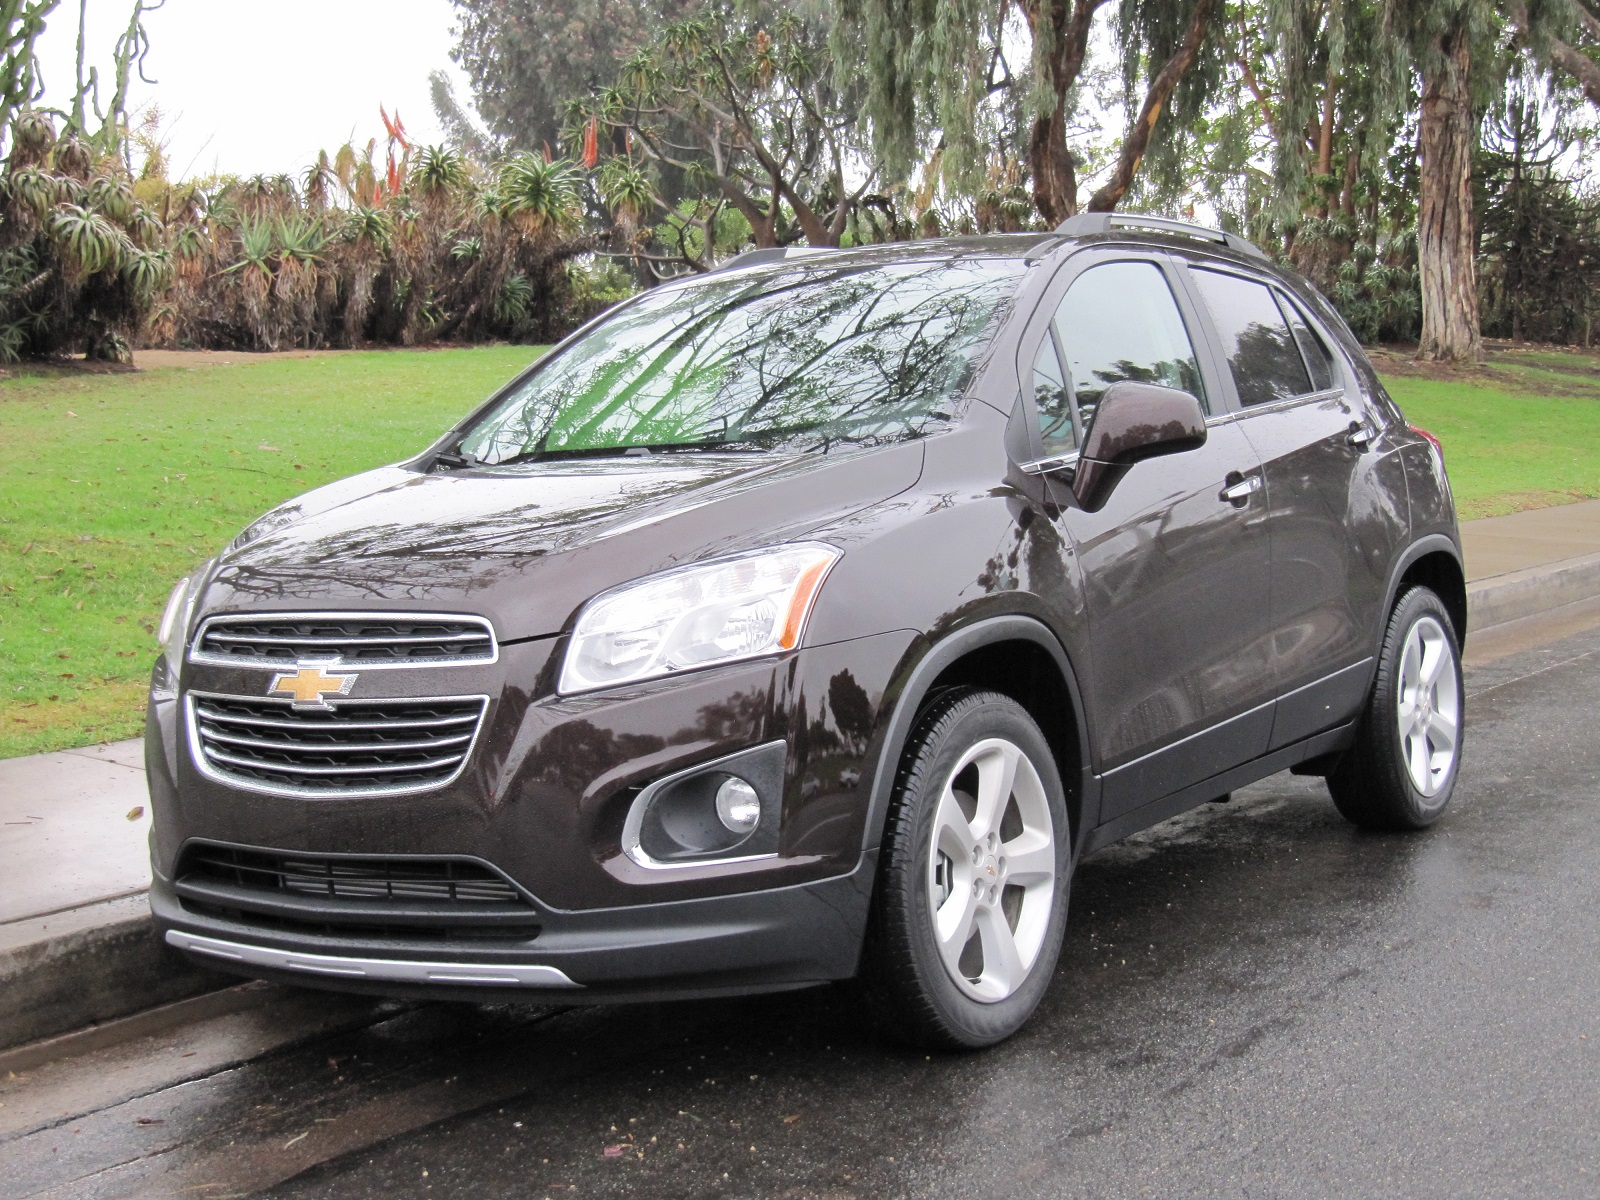 Brown Honda Charlottesville >> 2015 Chevrolet Trax (Chevy) Review, Ratings, Specs, Prices ...